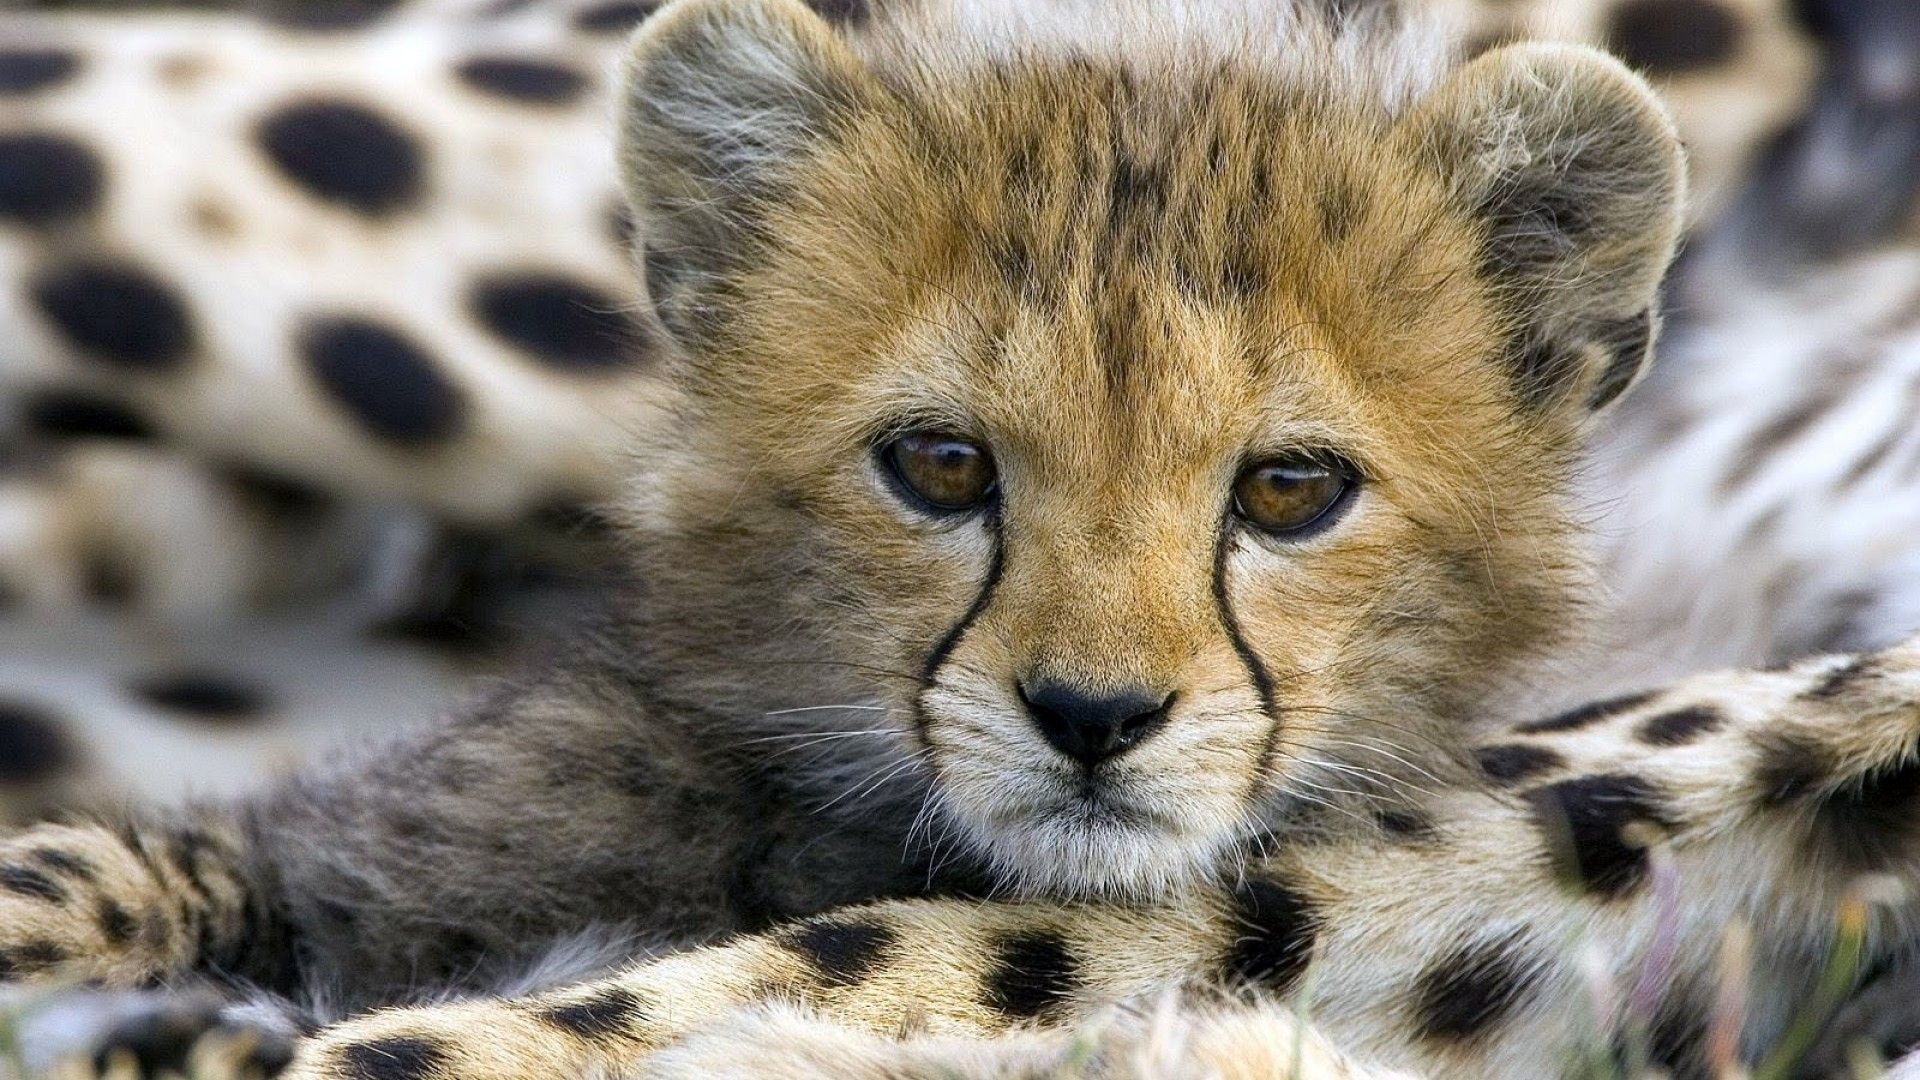 Cute Cheetah Wallpapers - Wallpaper Cave